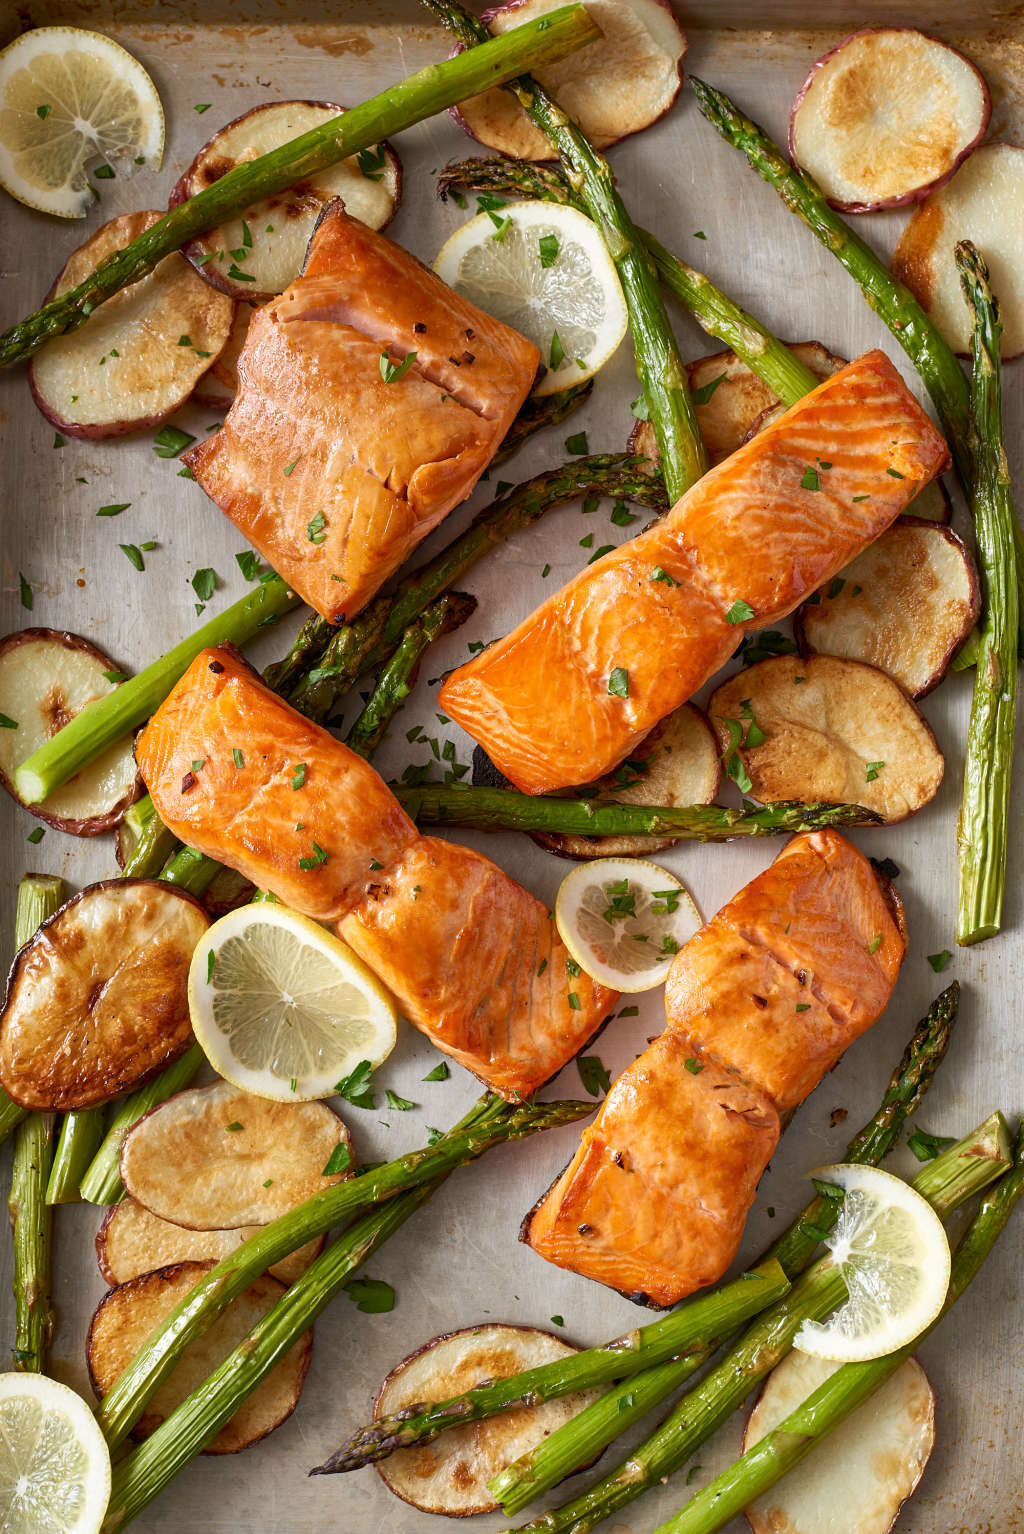 10 Balanced Sheet Pan Dinner Ideas You'll Love